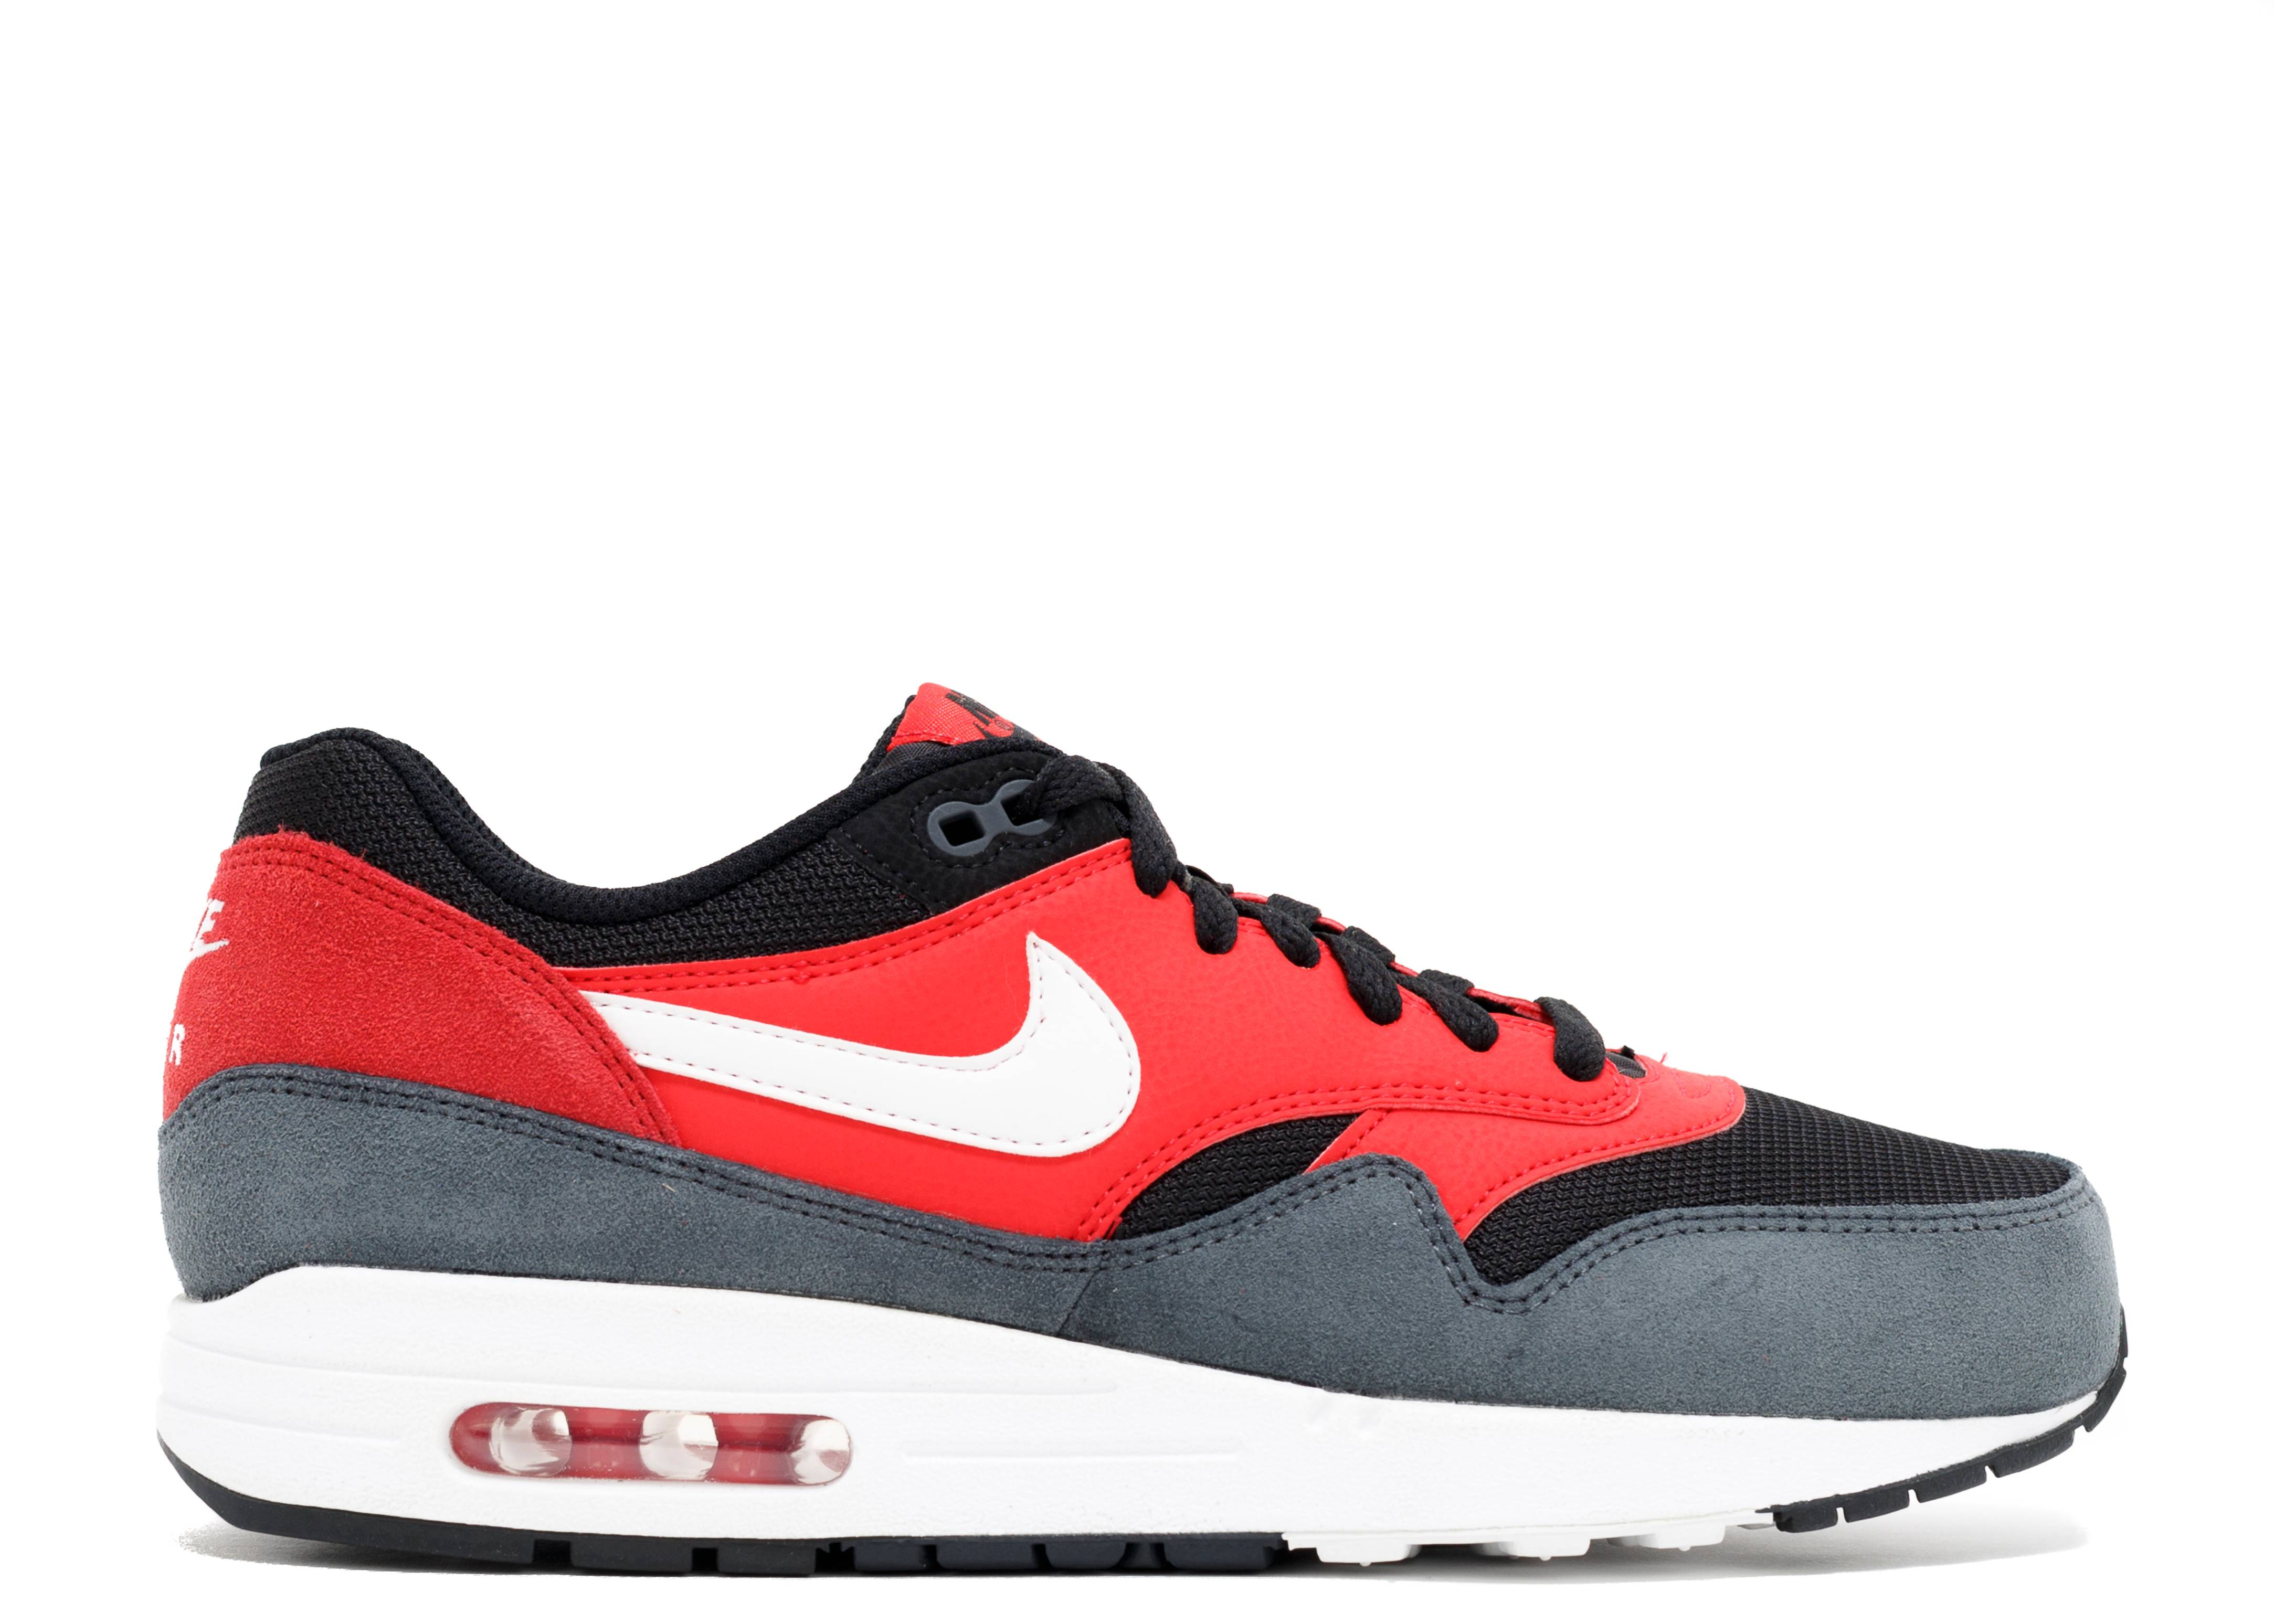 Easter Egg Cheap Nike Air 180 314187 131 Nike Air Max 180